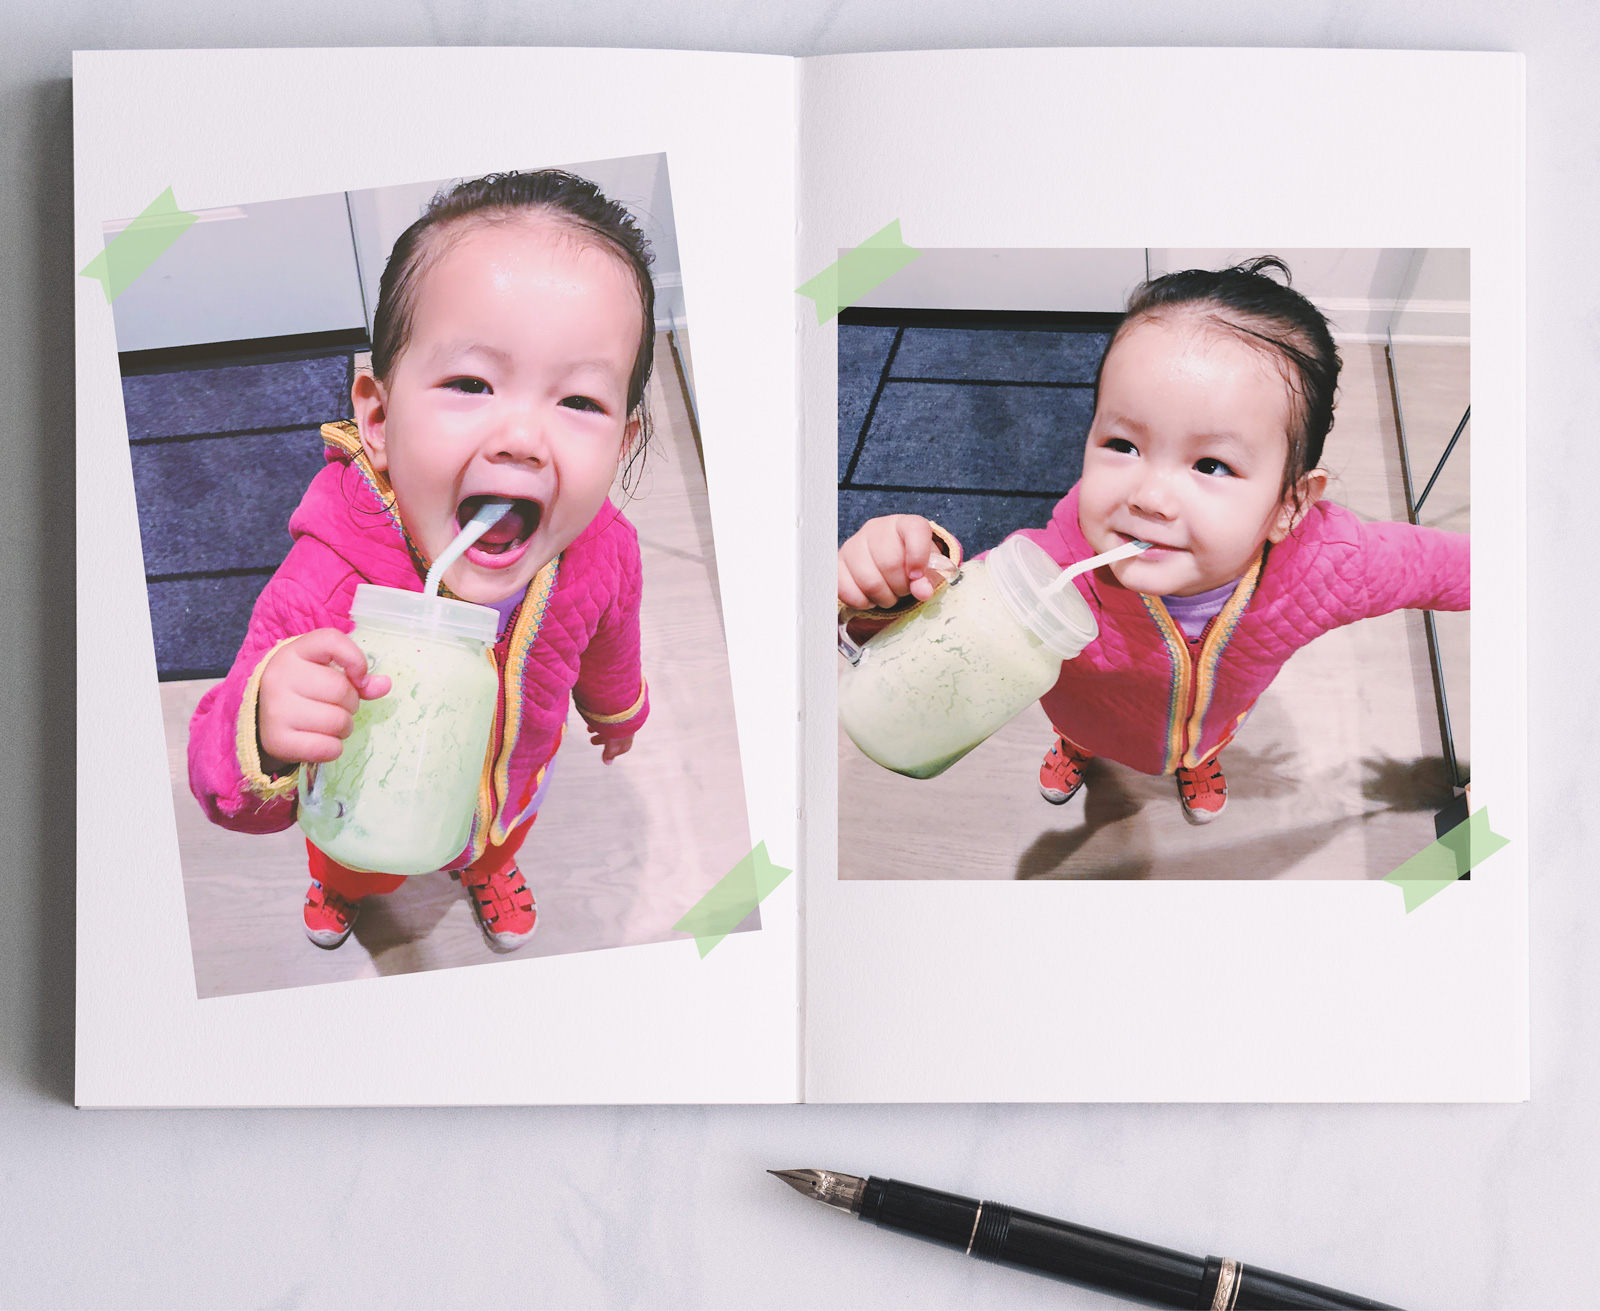 munchkin with green smoothie